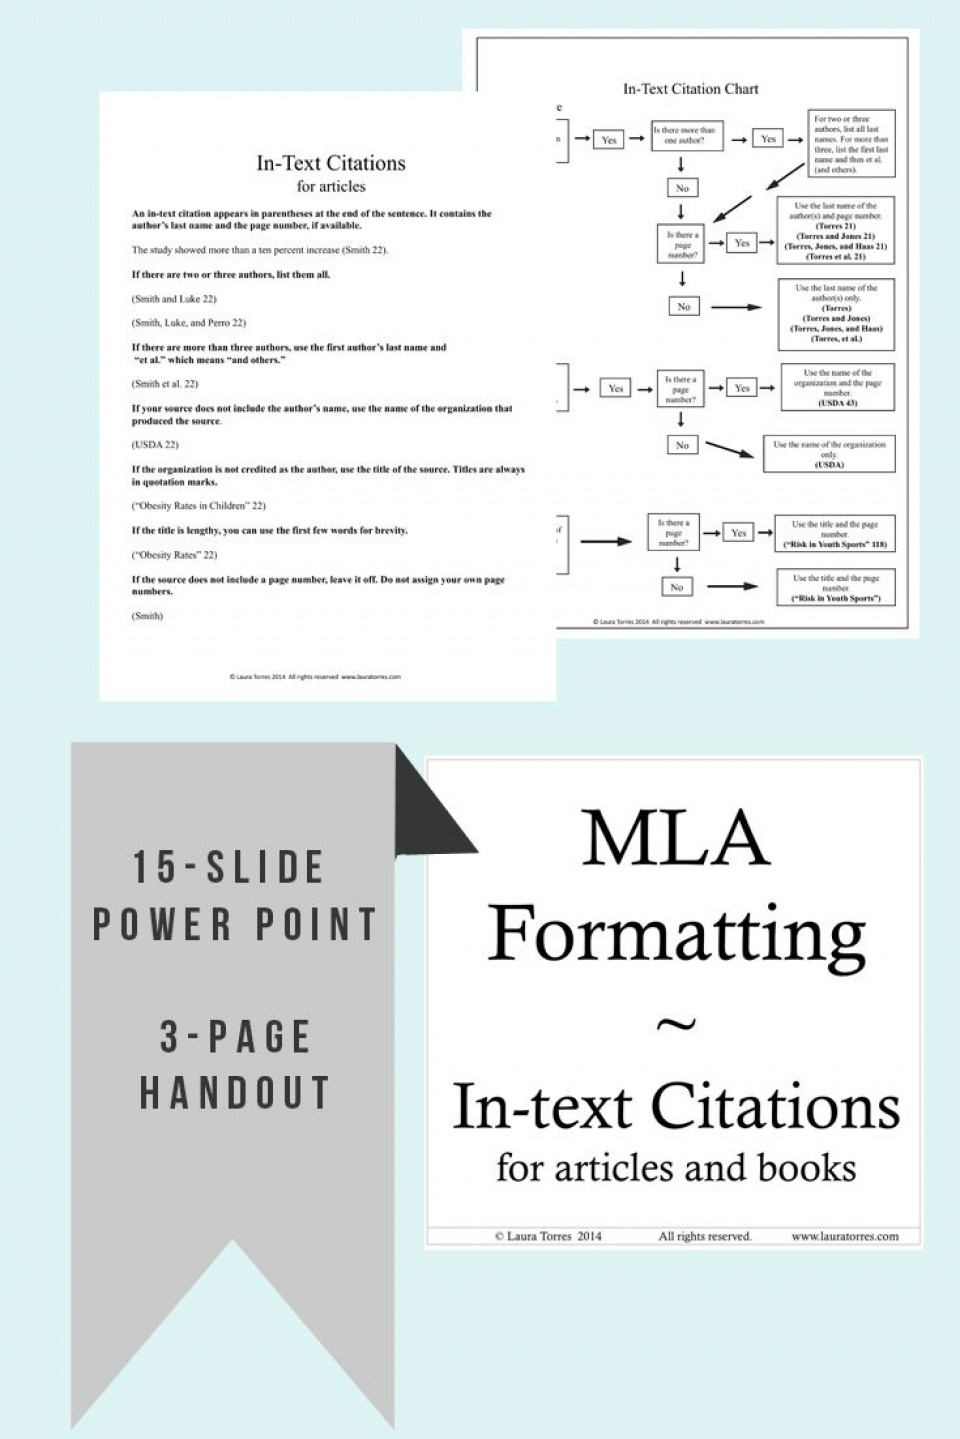 005 Research Paper Mla Format In Text Wonderful Citations 960